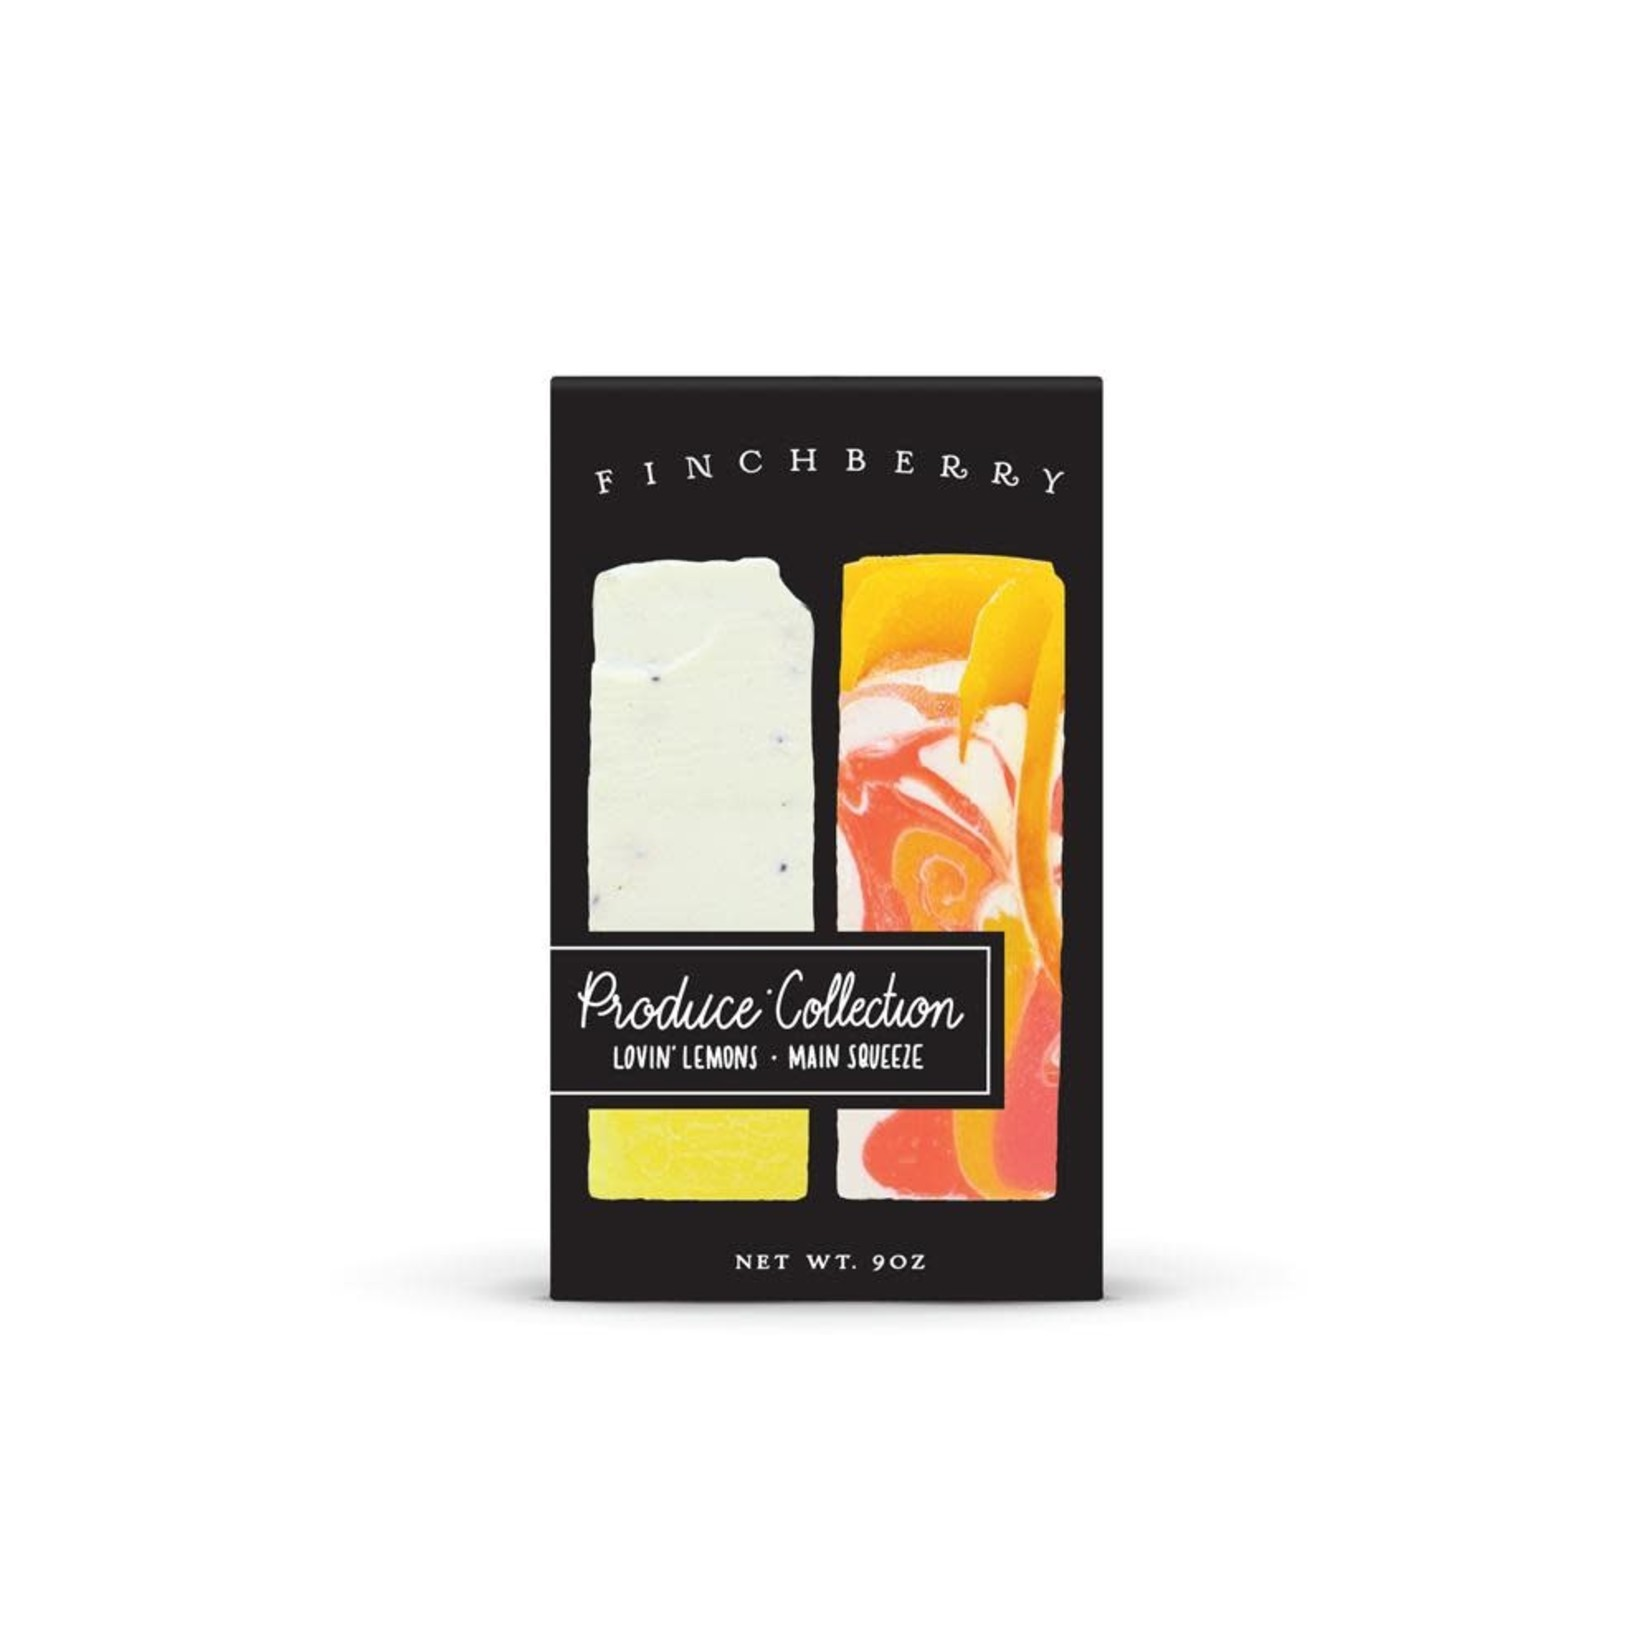 FinchBerry Soapery 2-Bar Gift Box - Produce Collection - Lovin Lemons + Main Squeeze